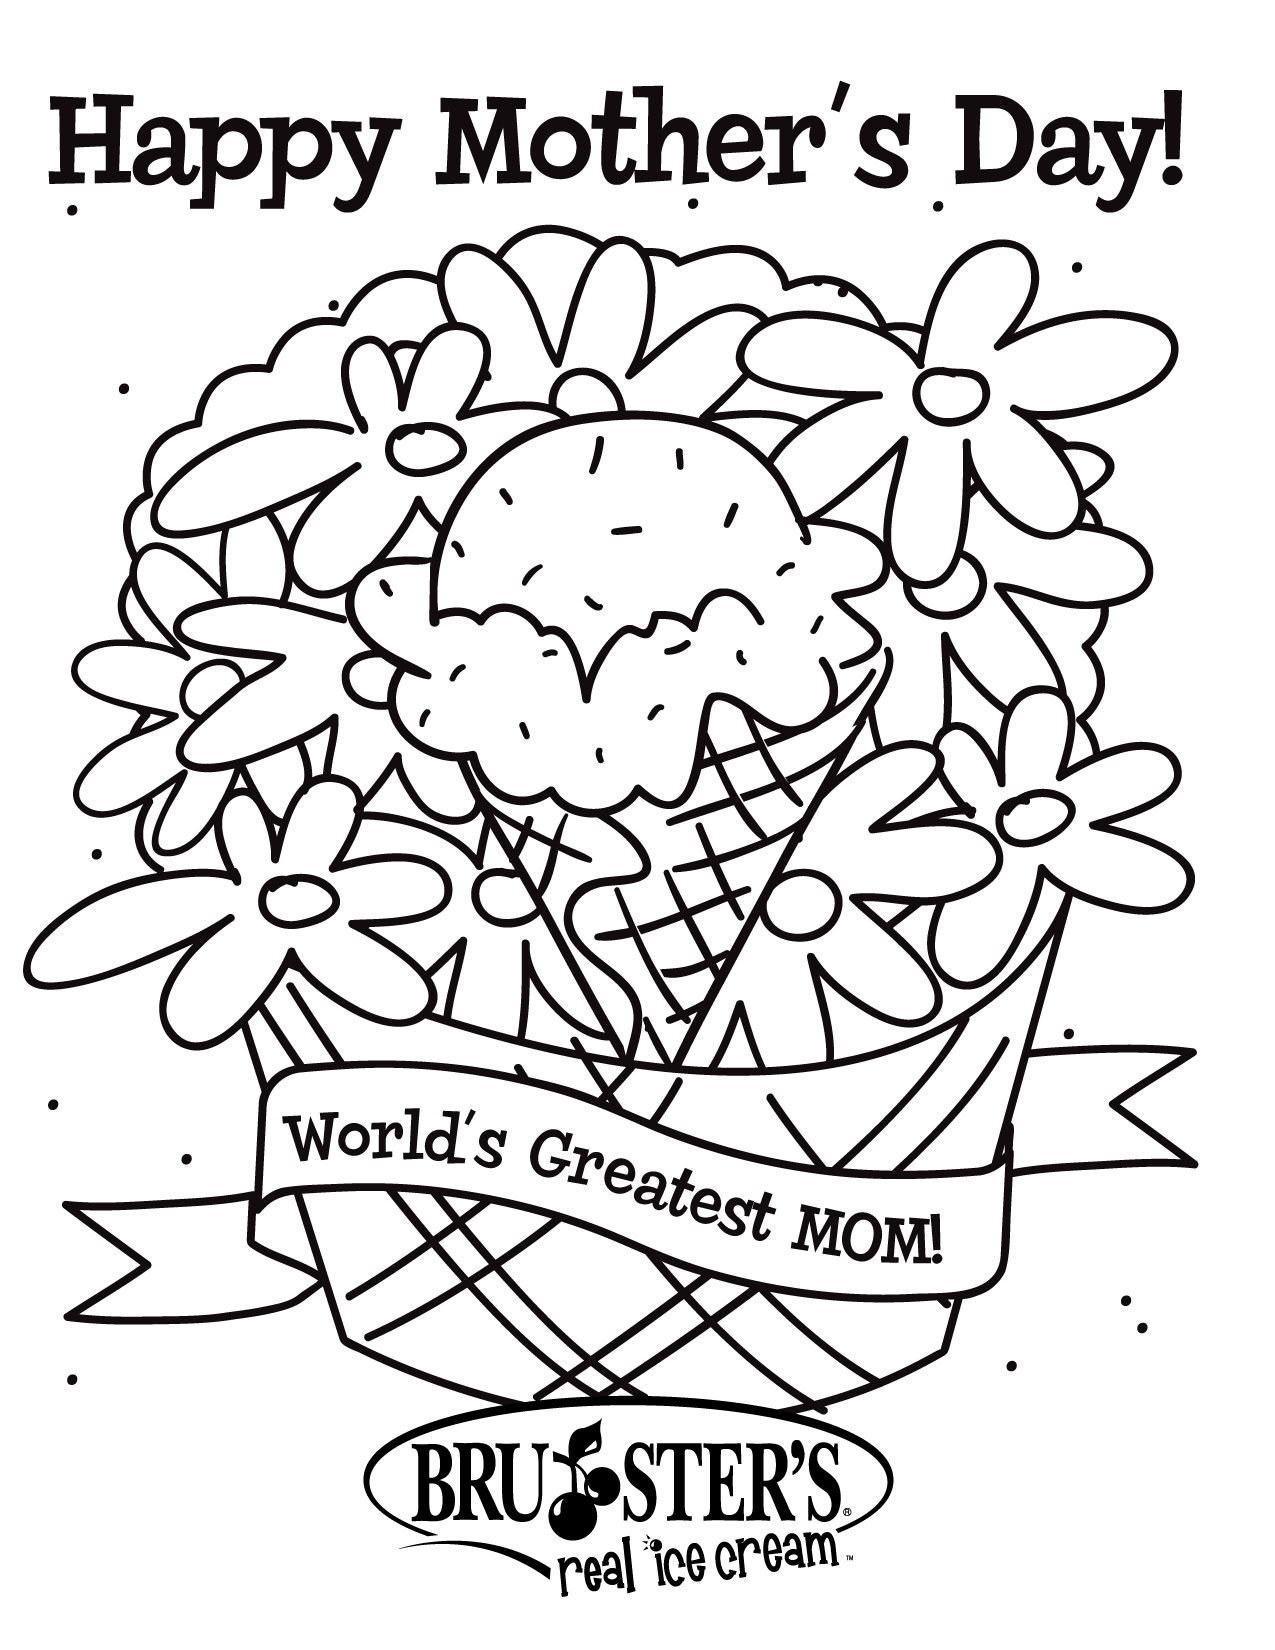 Engaging Mothers Day Coloring Printable To Pretty Free Download Of Innovative Happy